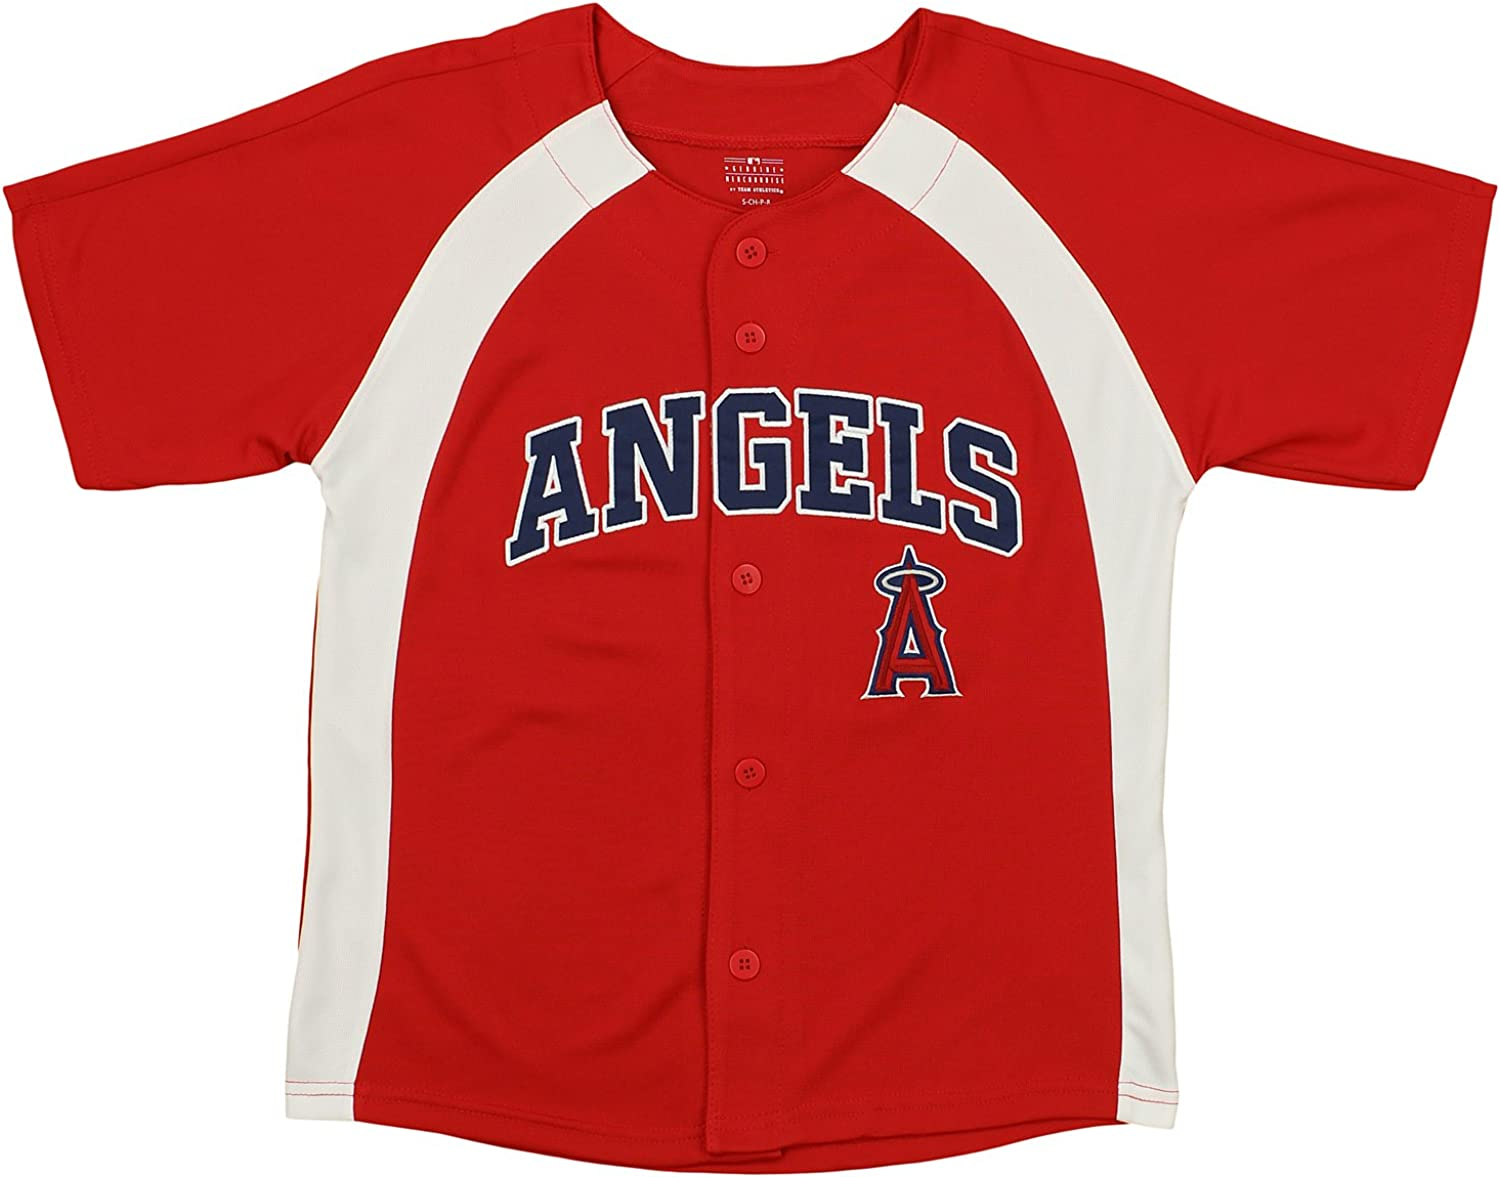 Outerstuff MLB Youth Boys (8-20) Team Color Button Down Baseball Jersey, Various Teams